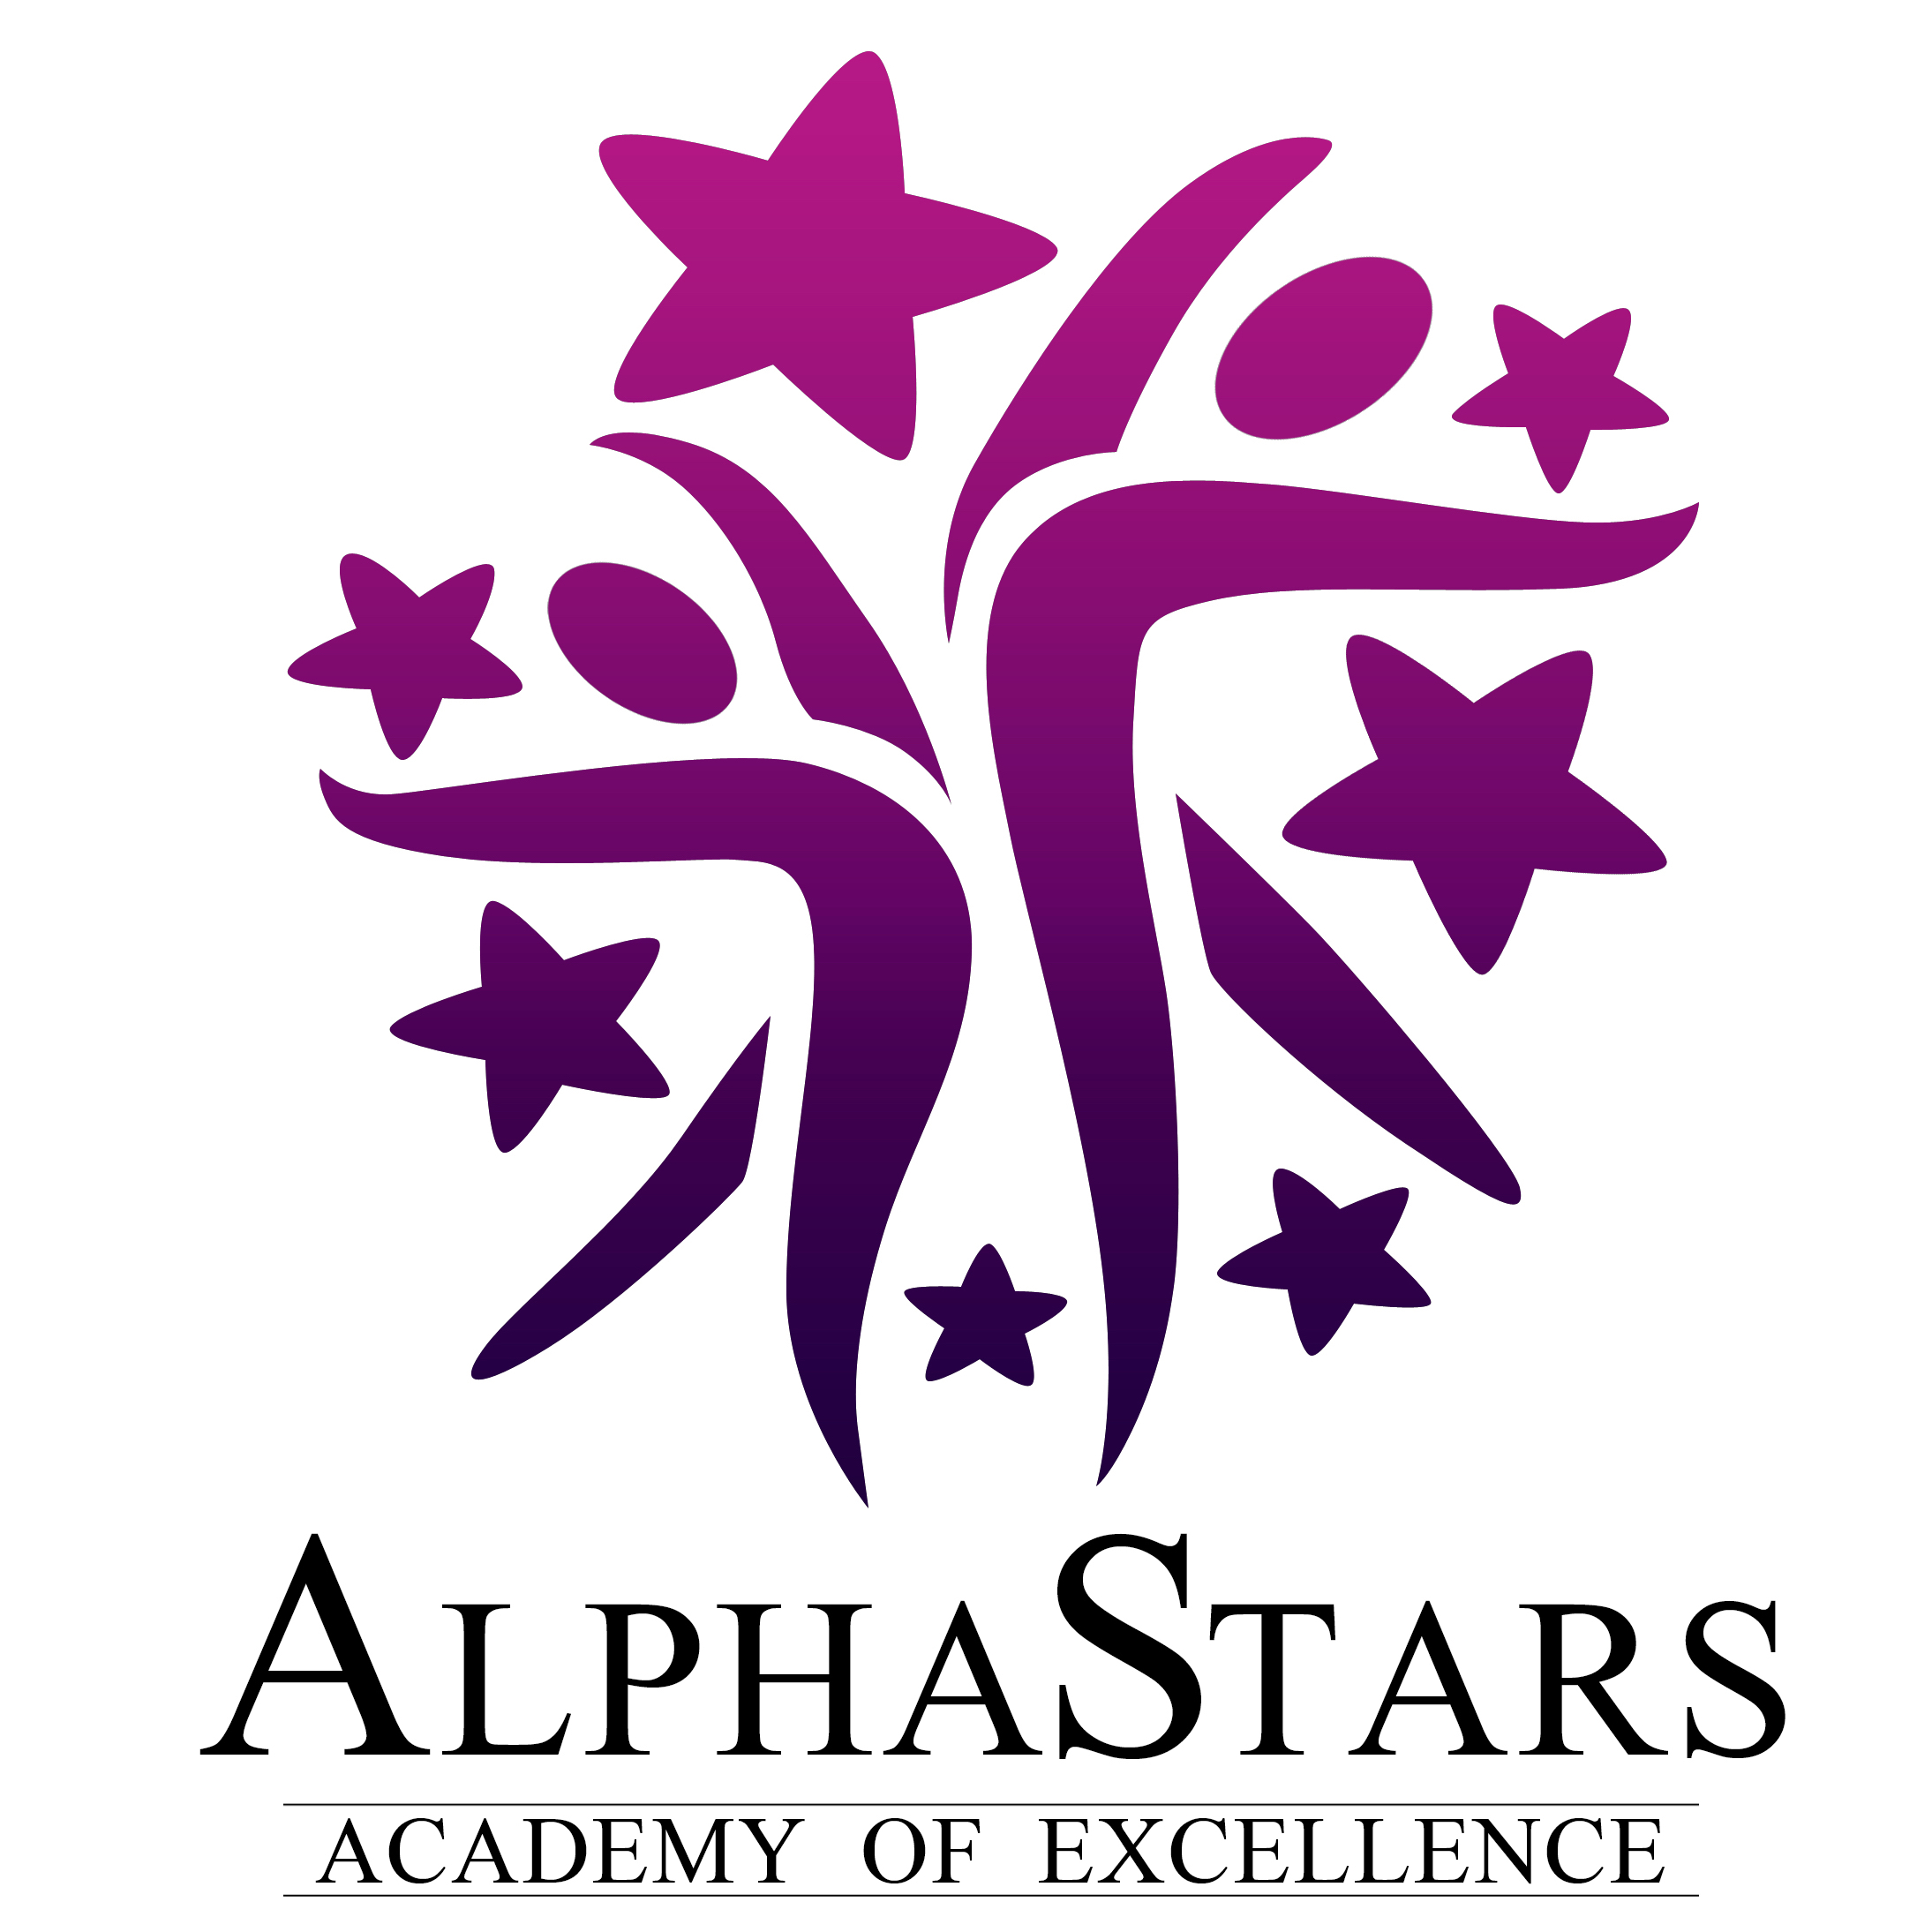 AlphaStars Academy of Excellence